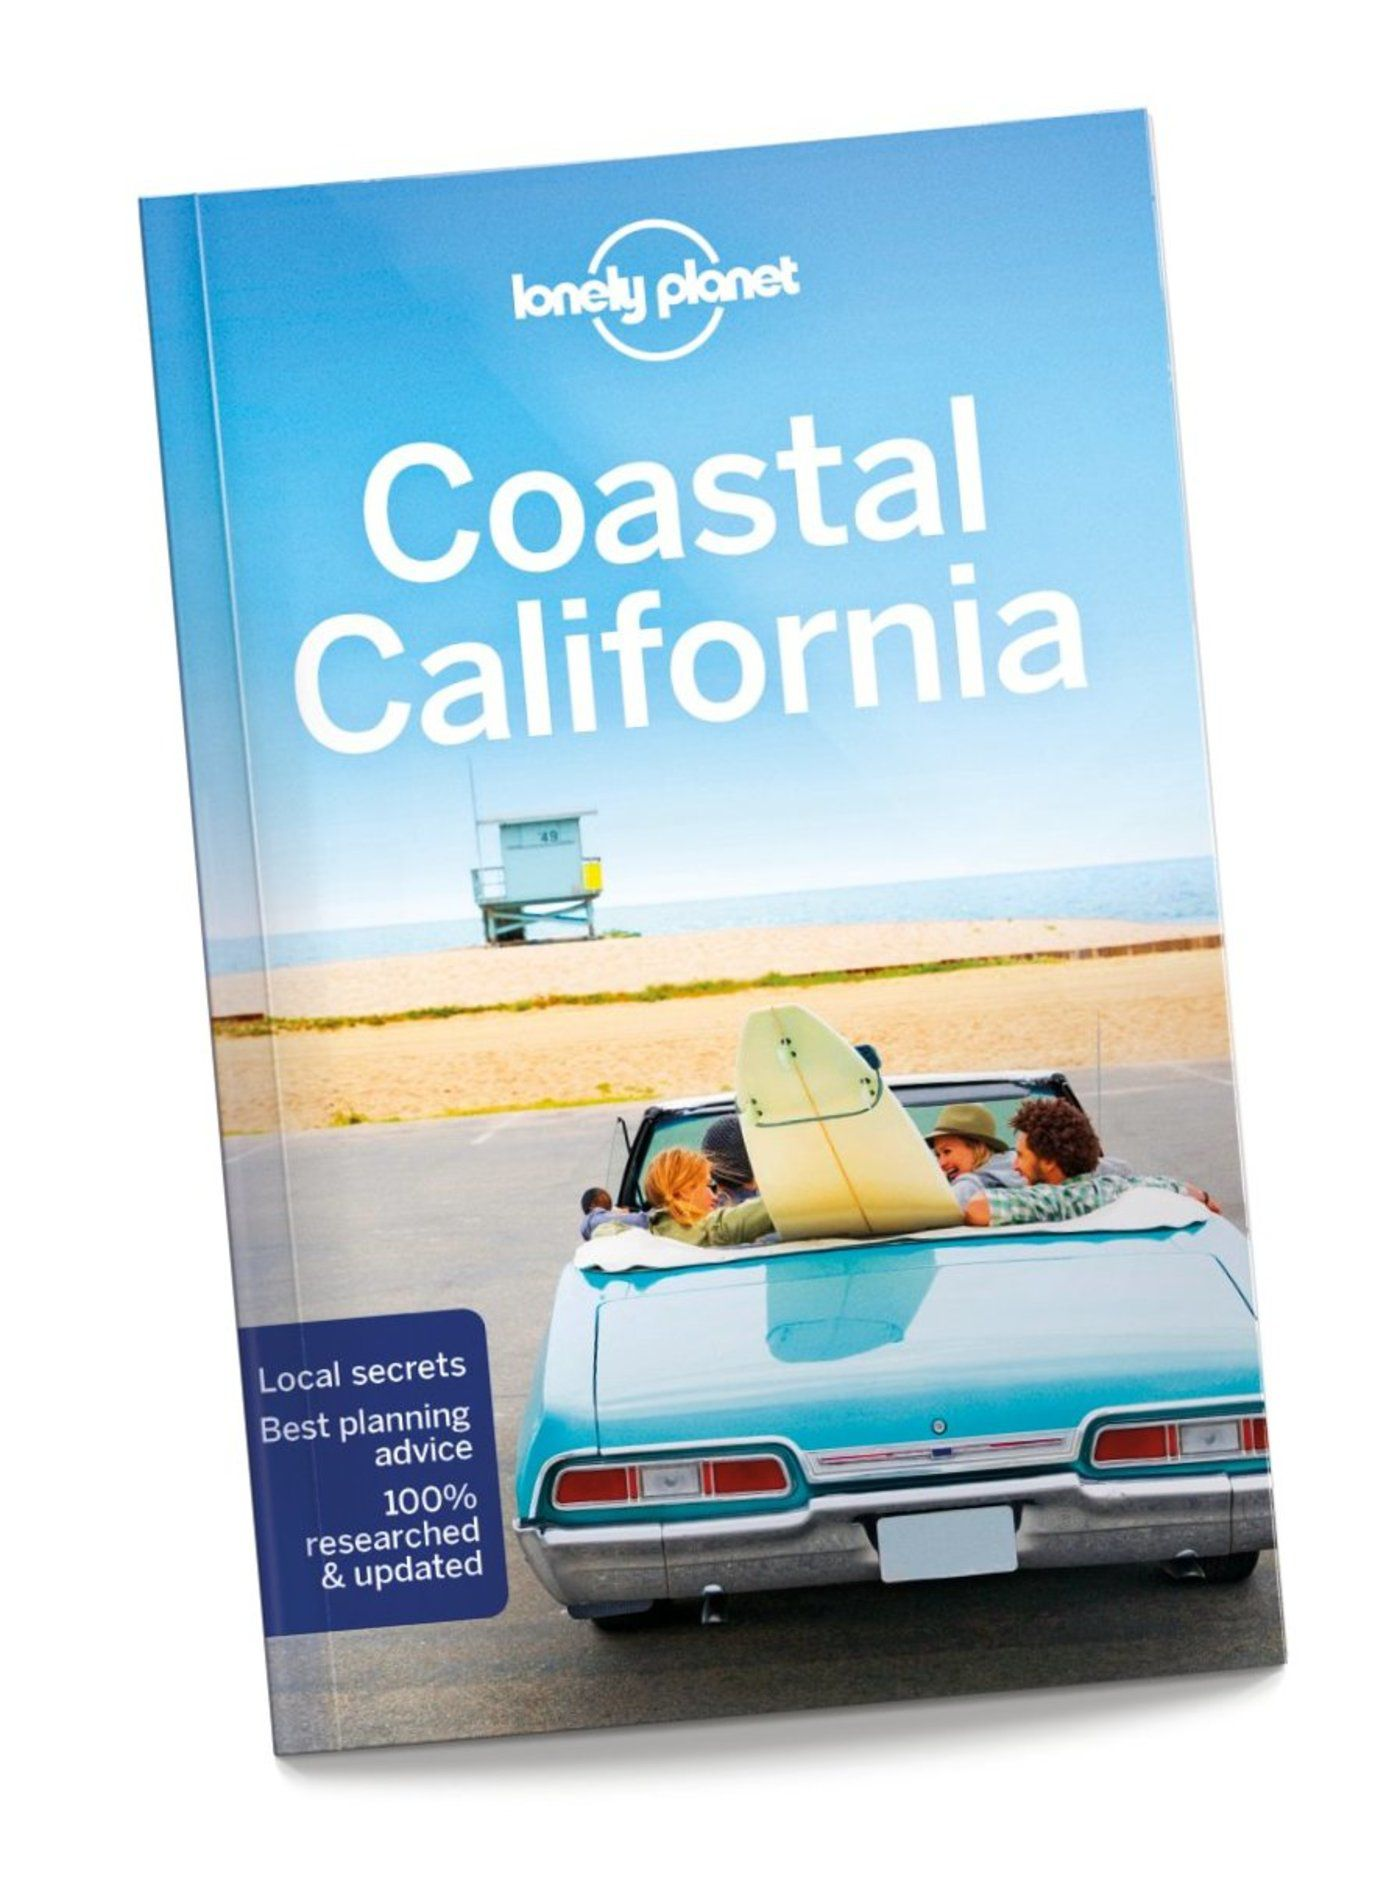 coastal california travel guidebook lonely planet shop lonely planet us. Black Bedroom Furniture Sets. Home Design Ideas